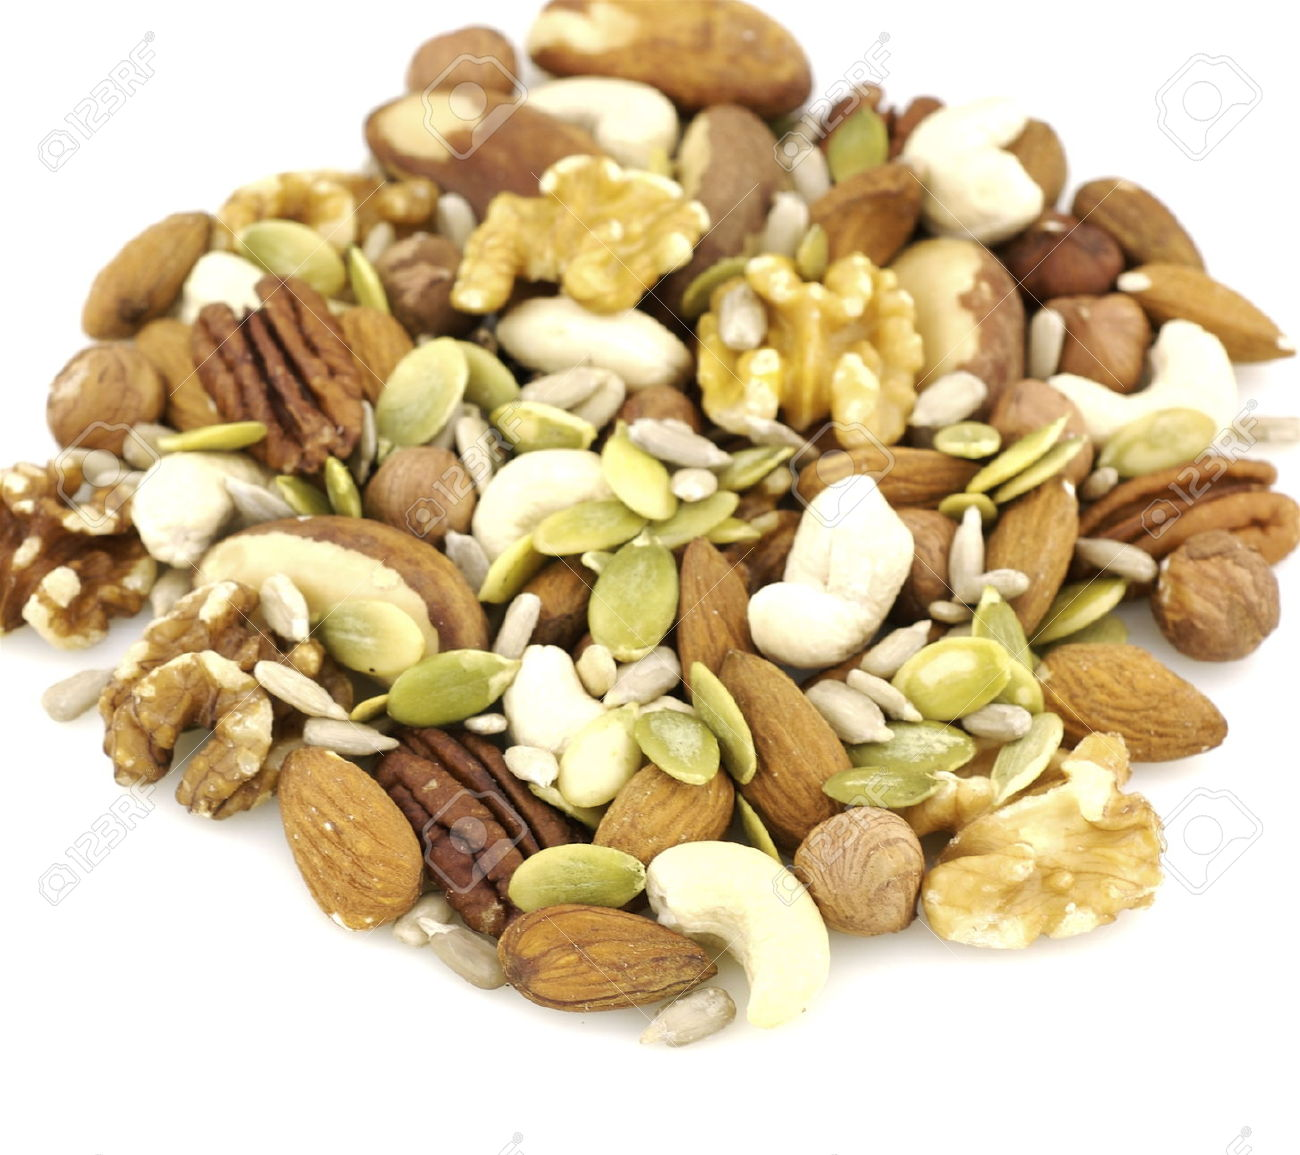 Nuts and seeds clipart.